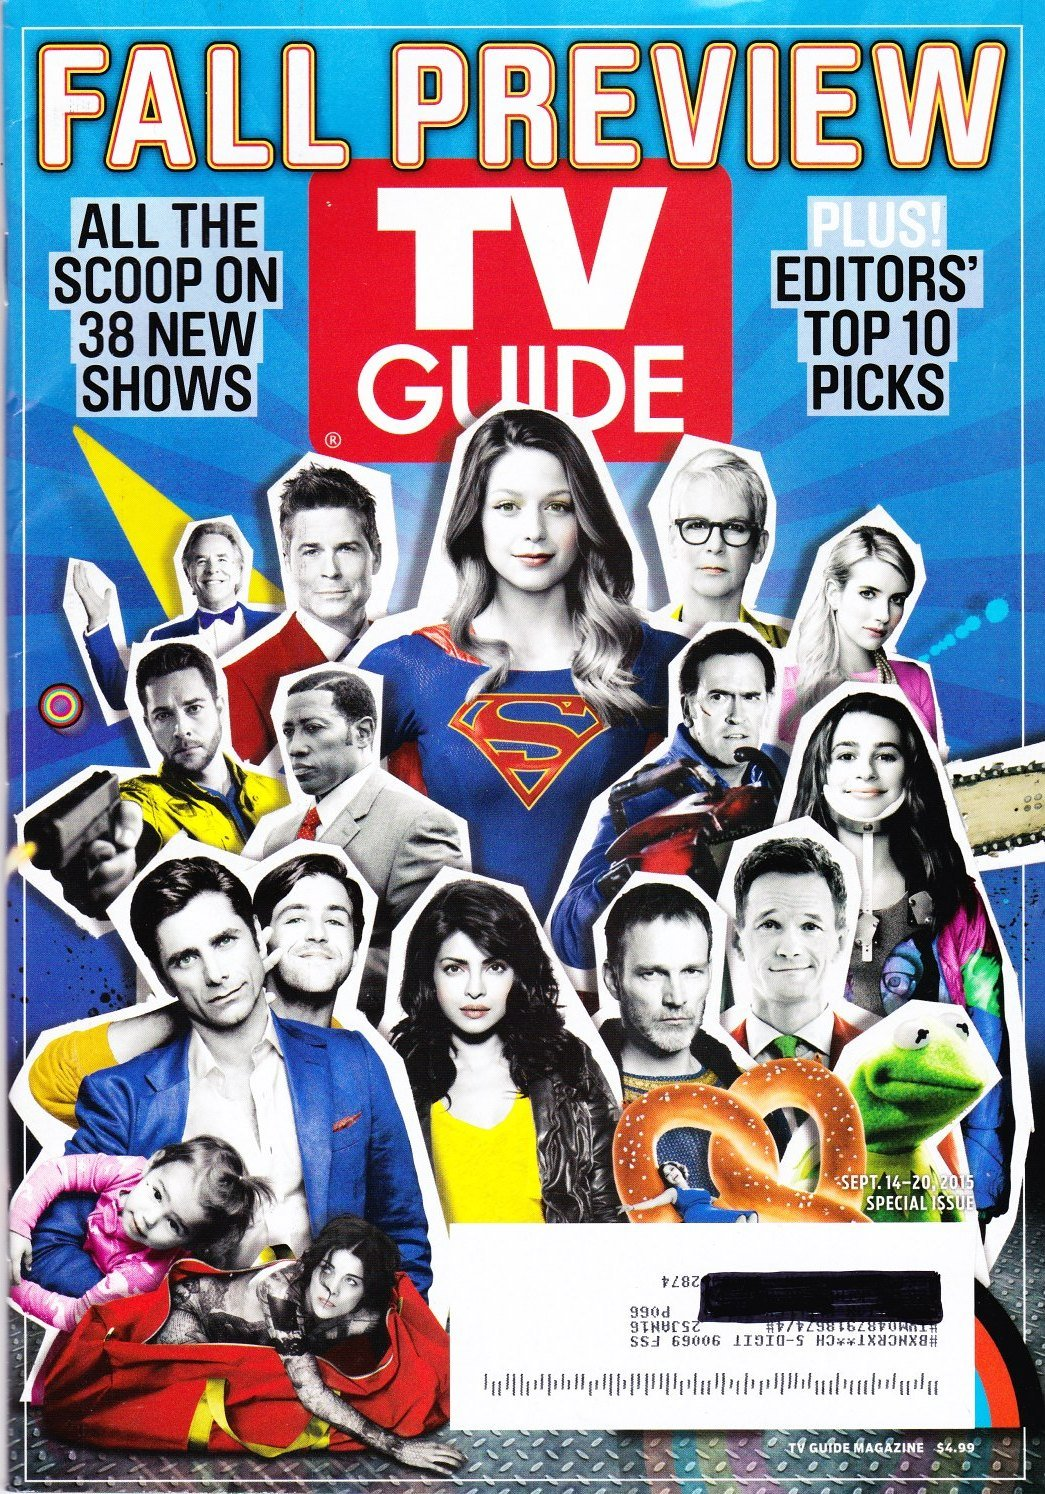 TV Guide - September 14-20, 2015 - Fall Preview: All the Scoop on 38 New Shows PDF